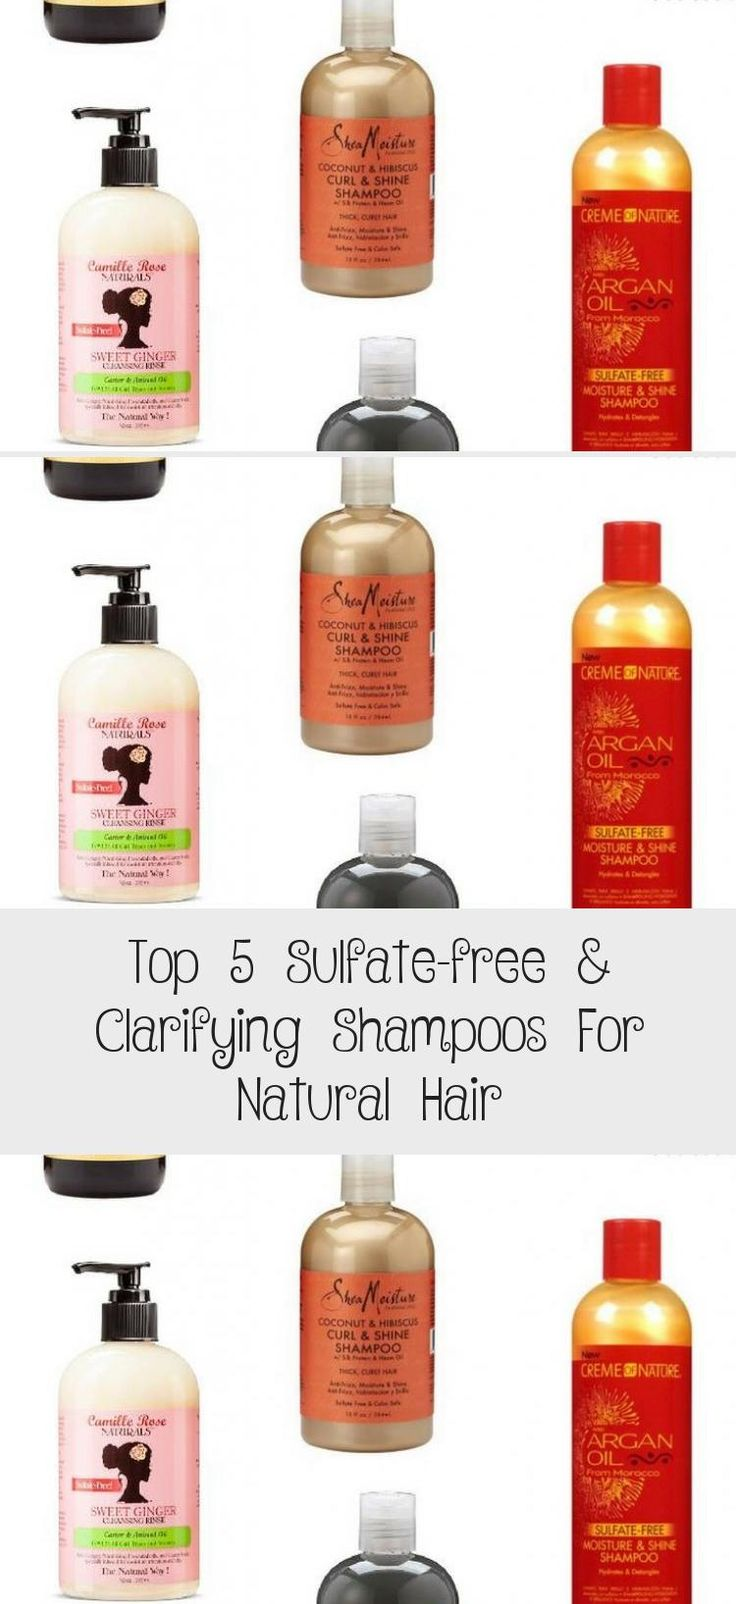 Top 5 Sulfate-free & Clarifying Shampoos For Natural Hair ...